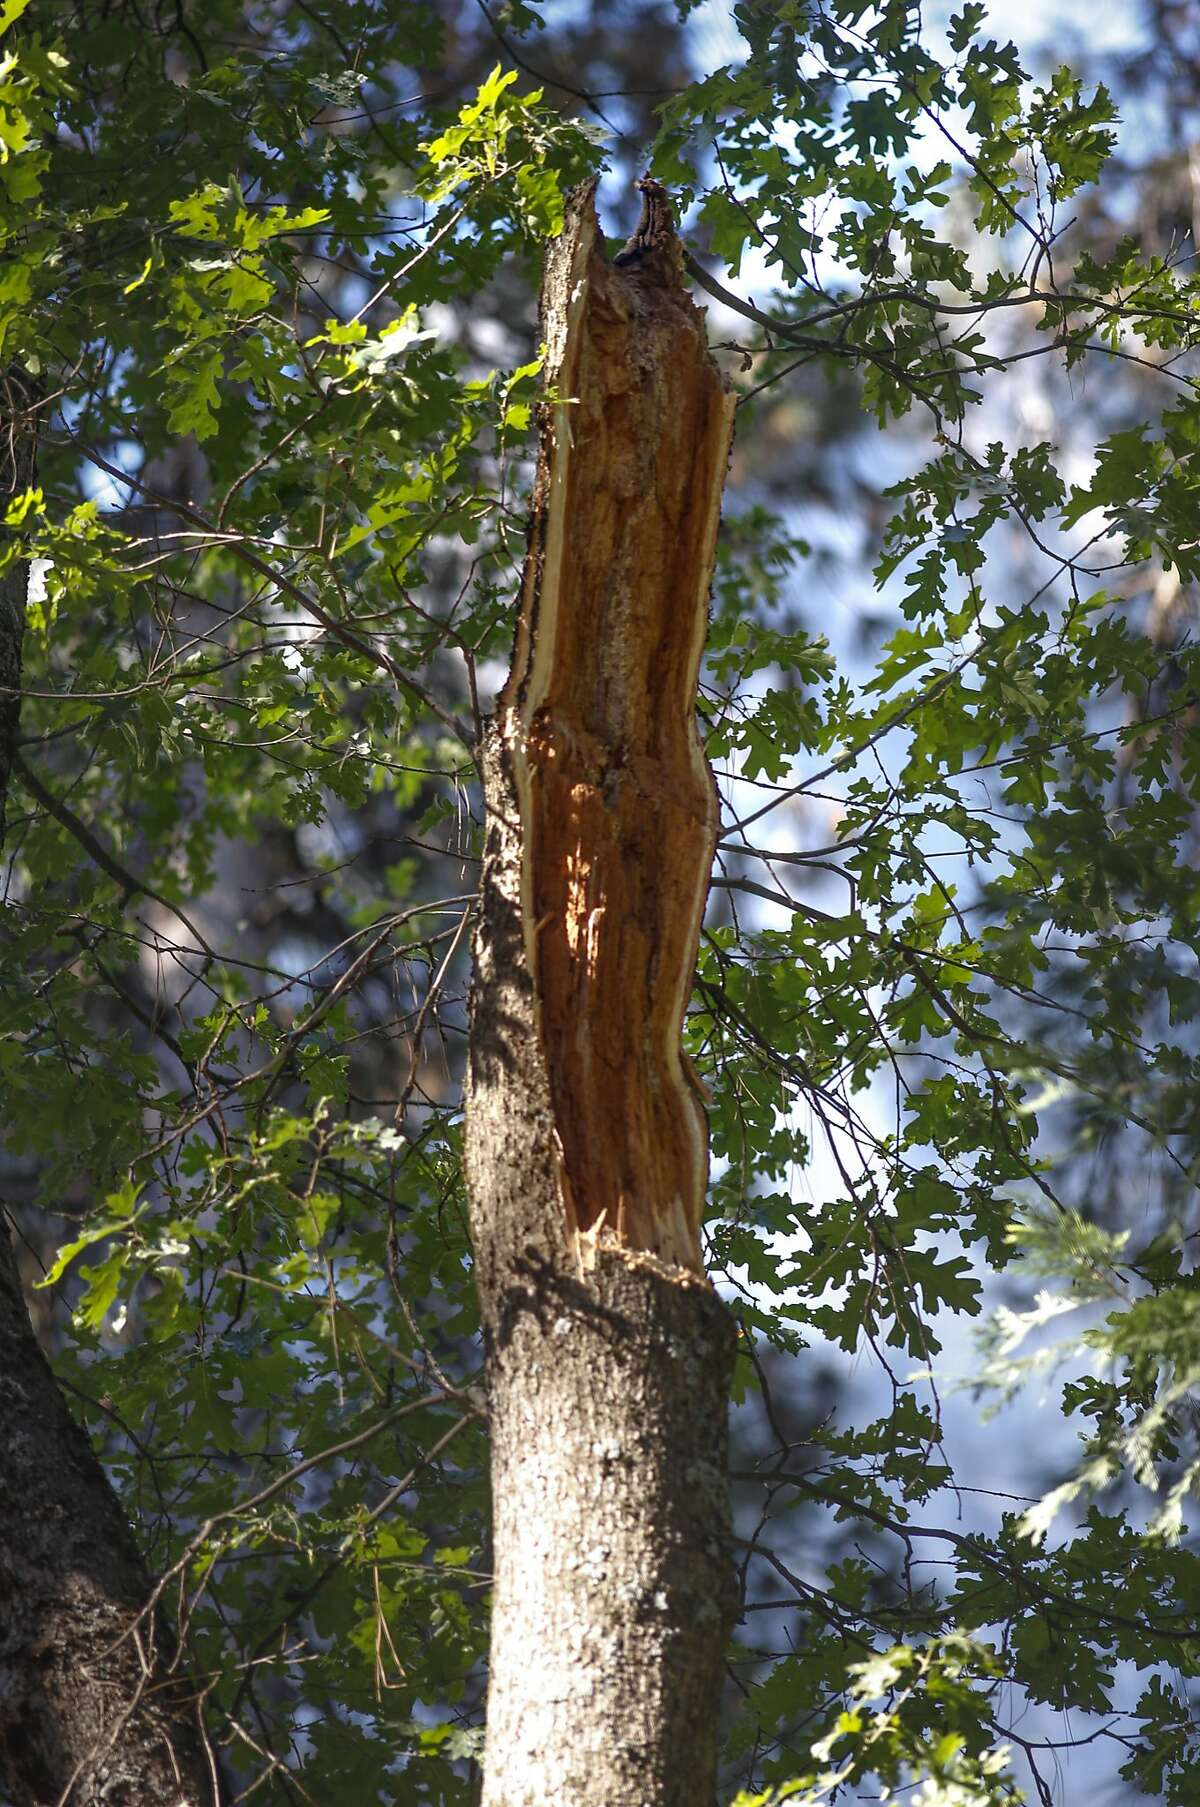 The trunk of the oak tree that lost the huge branch at the Upper Pines campground in Yosemite National Park, Calif., on Sat. August 15, 2015, a day after the tree branch fell onto a tent with two children sleeping inside killing them.